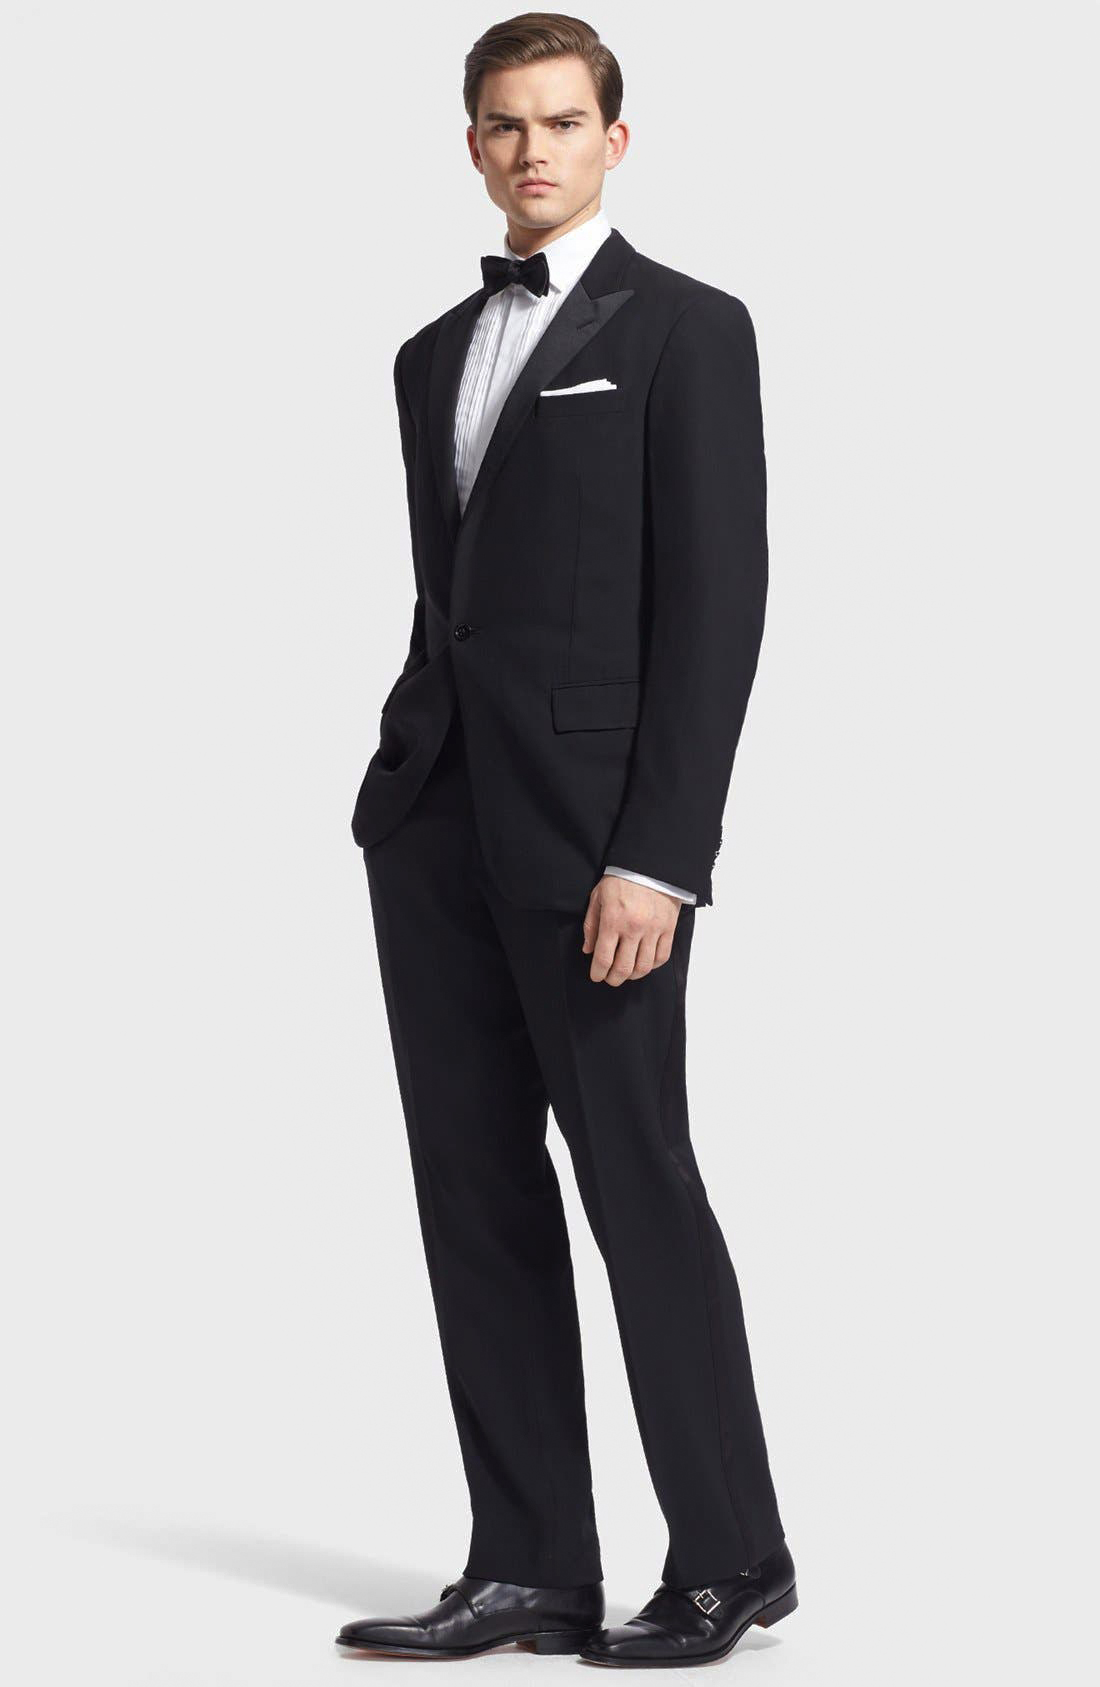 affordable tuxedo made of wool